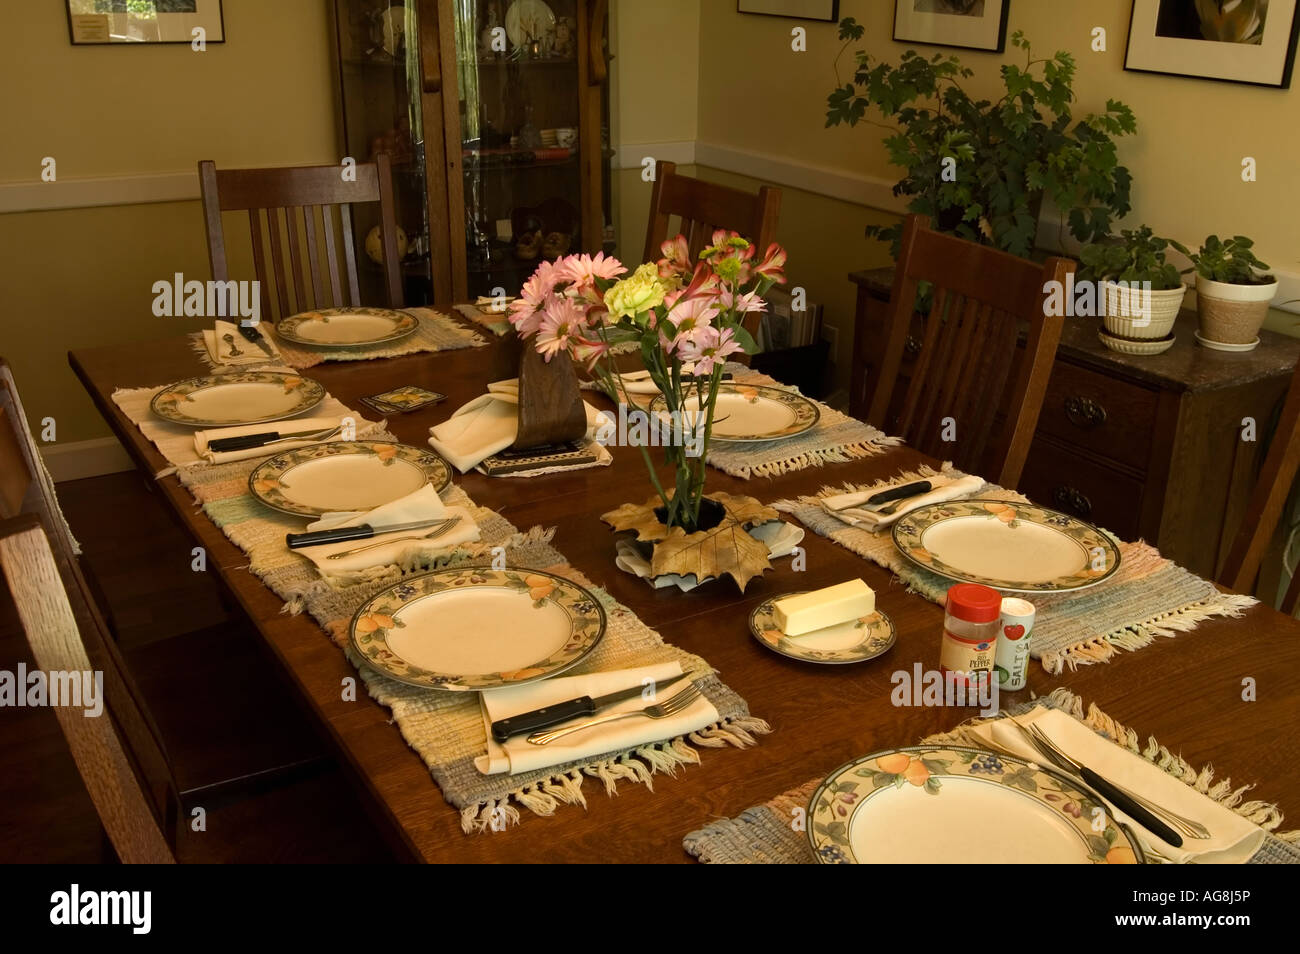 Dining Table Set Up Ideas Dining Room Table Set Up For Meal Stock Photo Royalty